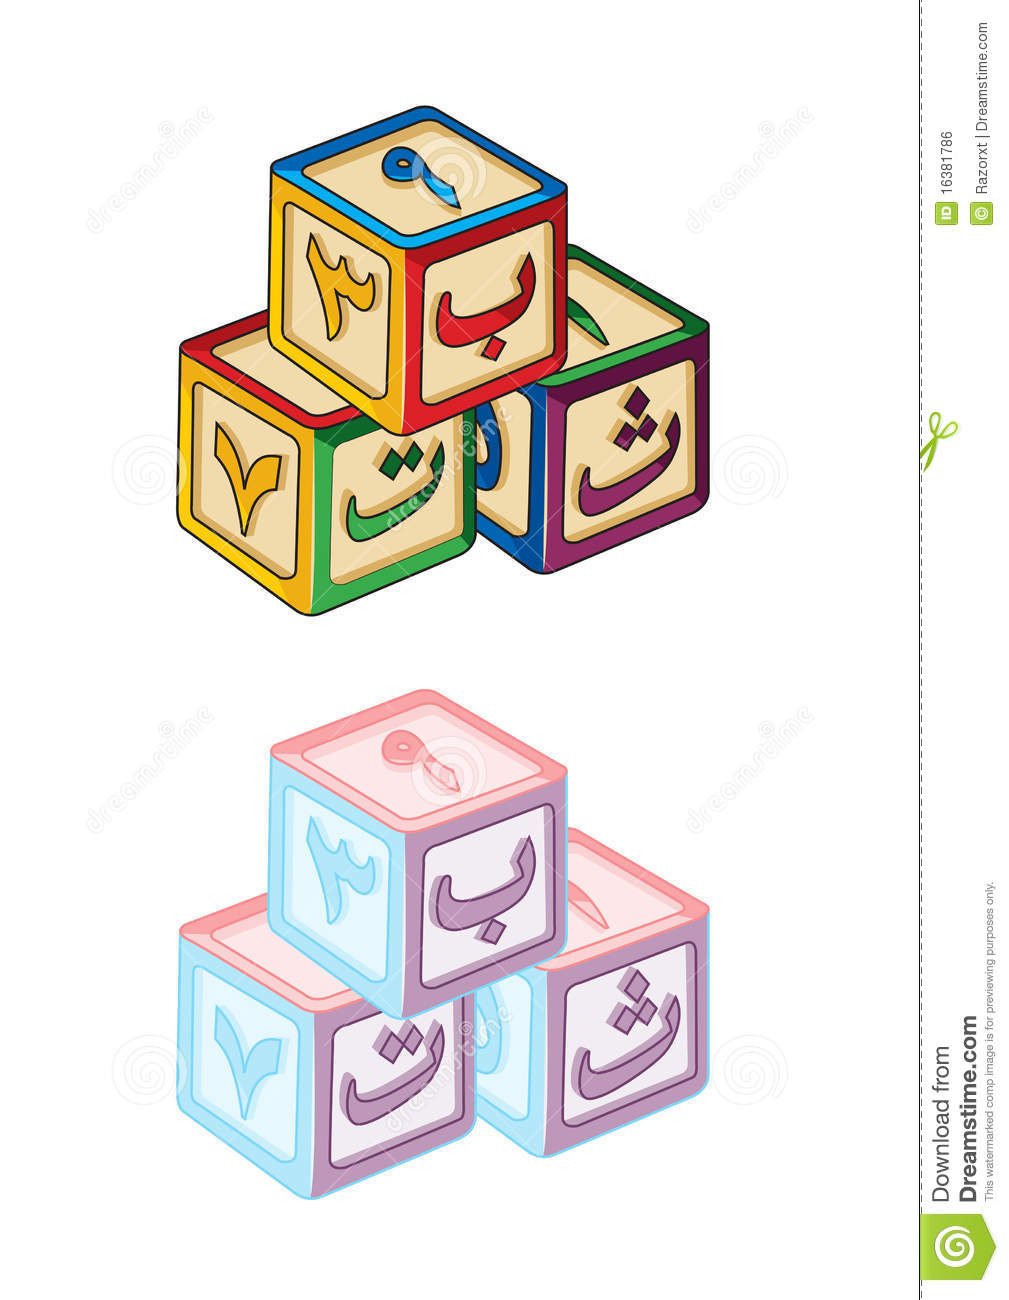 Clipart arabic alphabet picture free Arabic Alphabet Blocks Royalty Free Stock Image - Image: 16381786 picture free